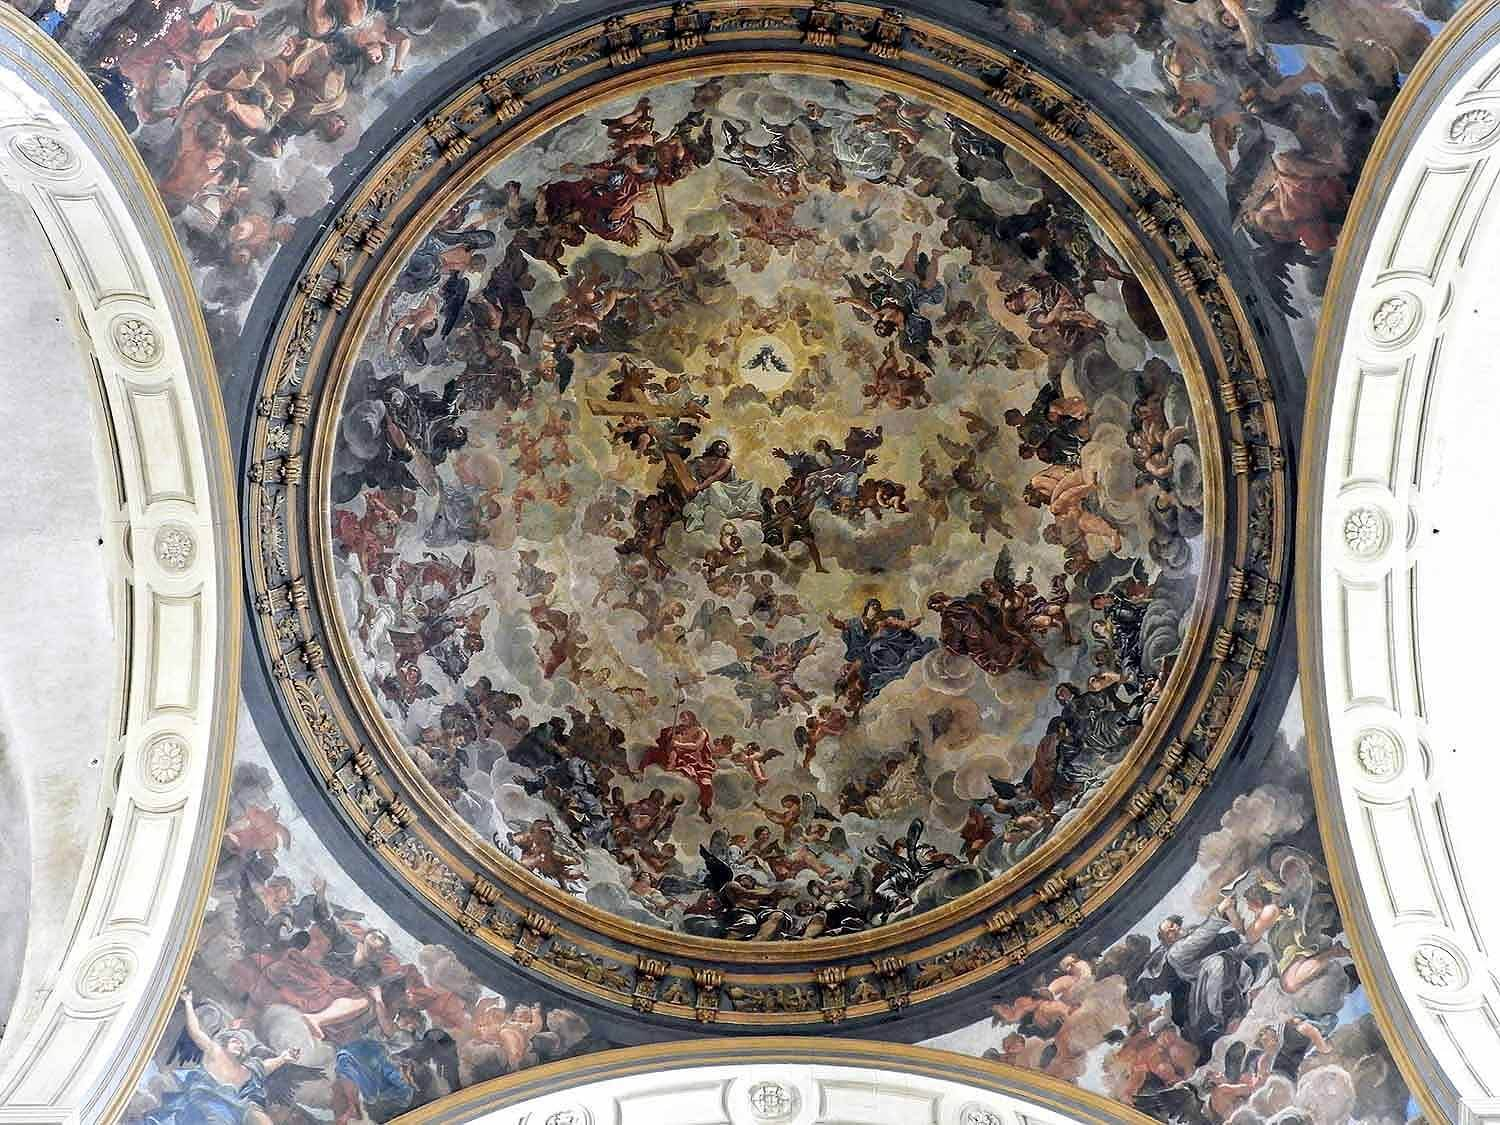 france-nancy-cathederal-ceiling-painting-master.jpg